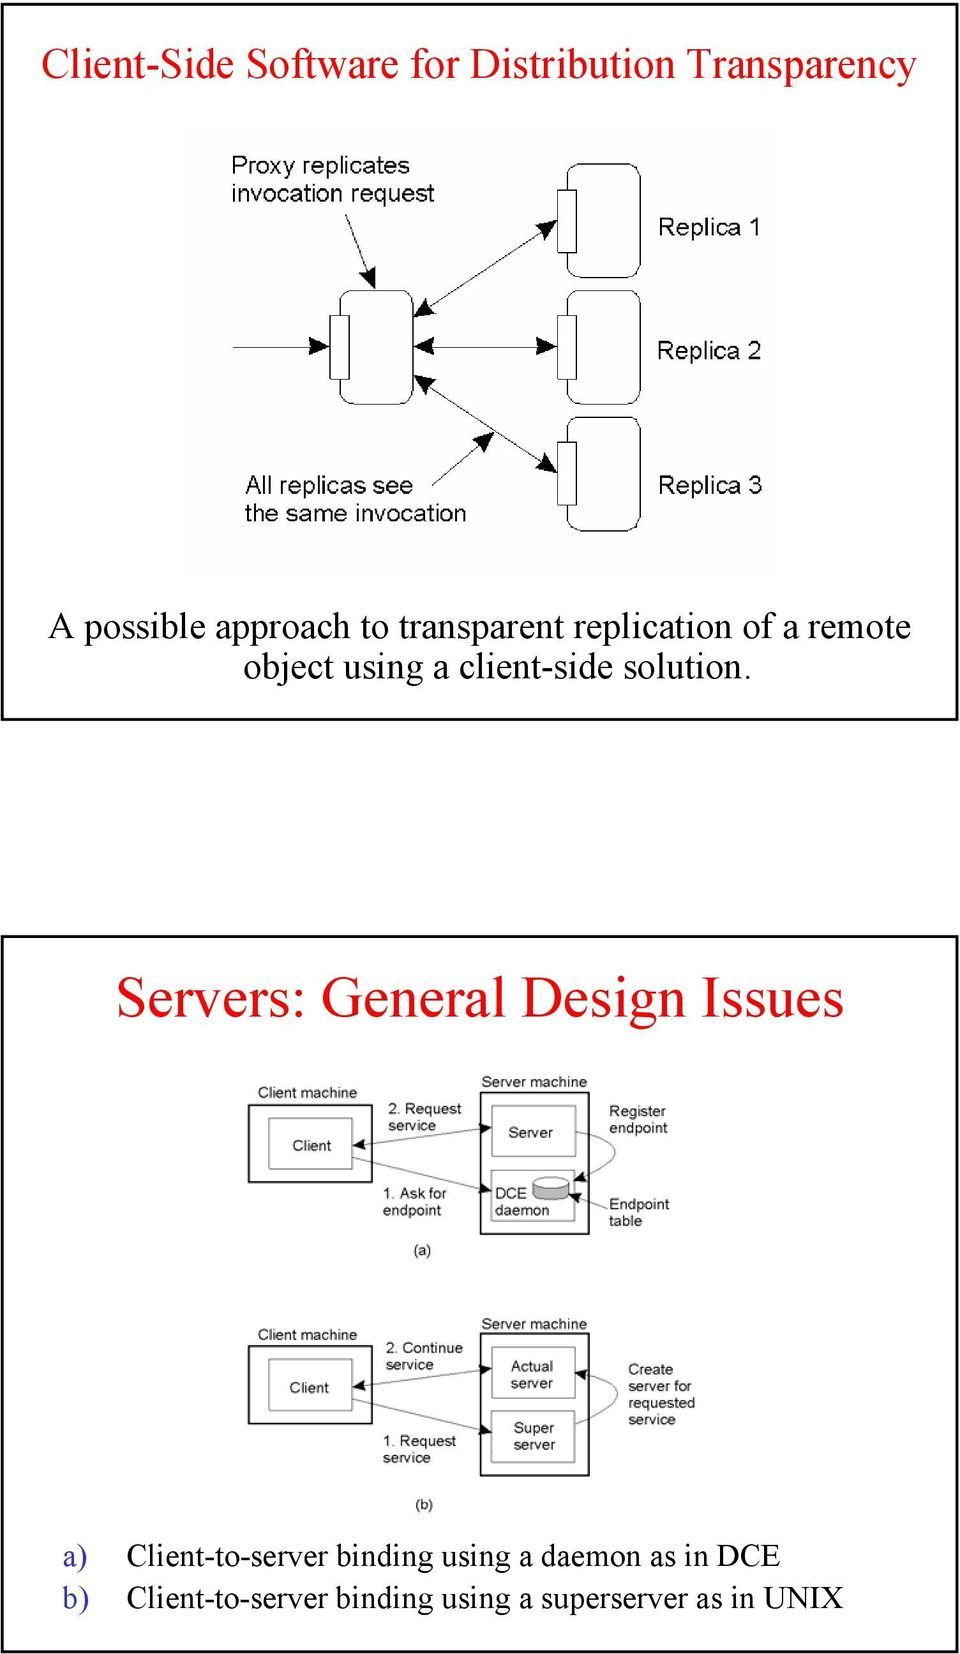 Servers: General Design Issues 3.